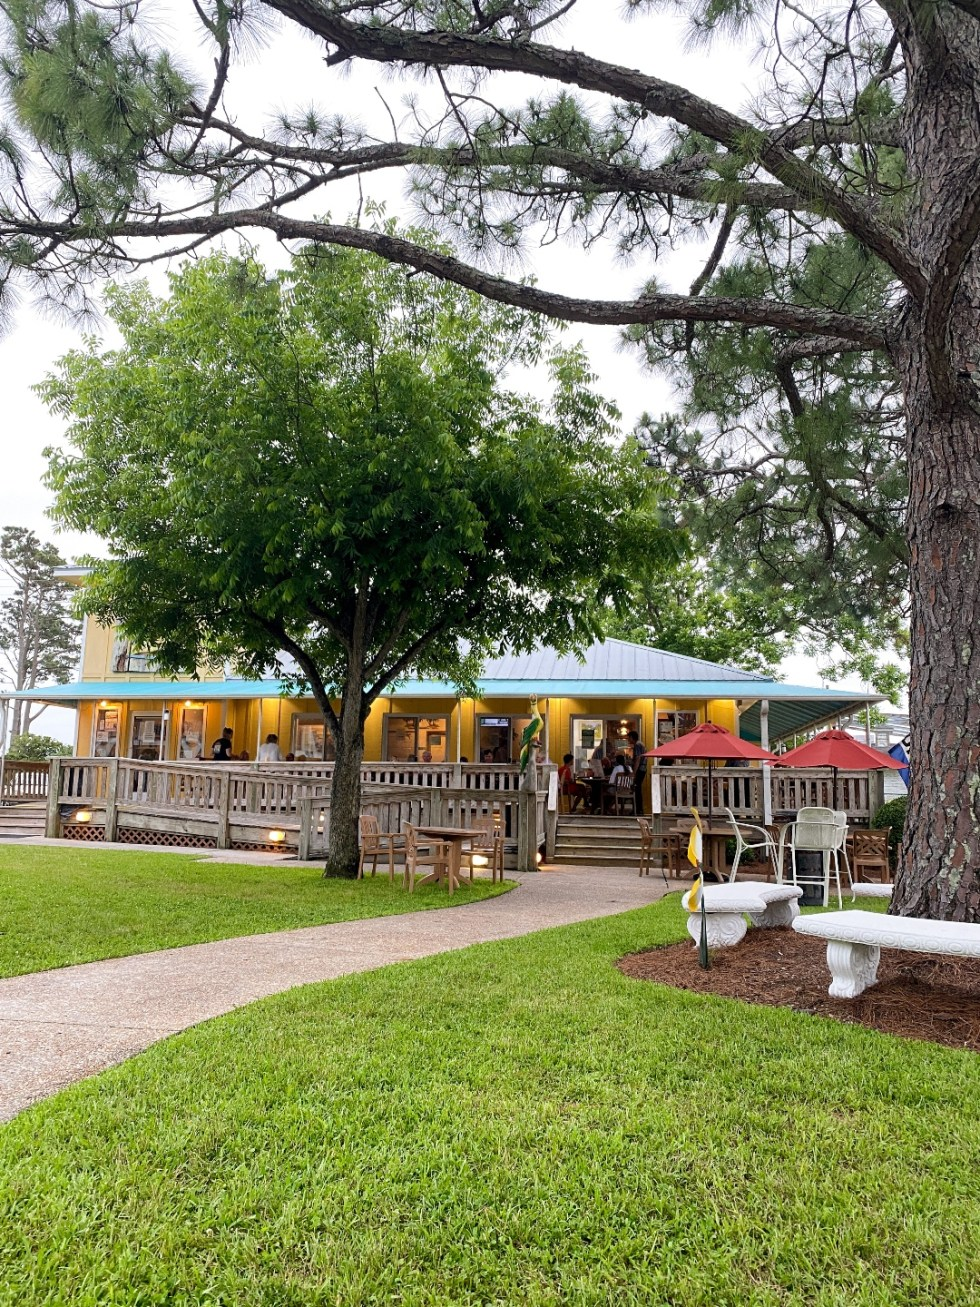 What to Do in Oriental, NC - I'm Fixin' To - @imfixintoblog | Things to do in Oriental NC by popular NC travel blog, I'm Fixin' To: image of the Oriental Marina and Inn.